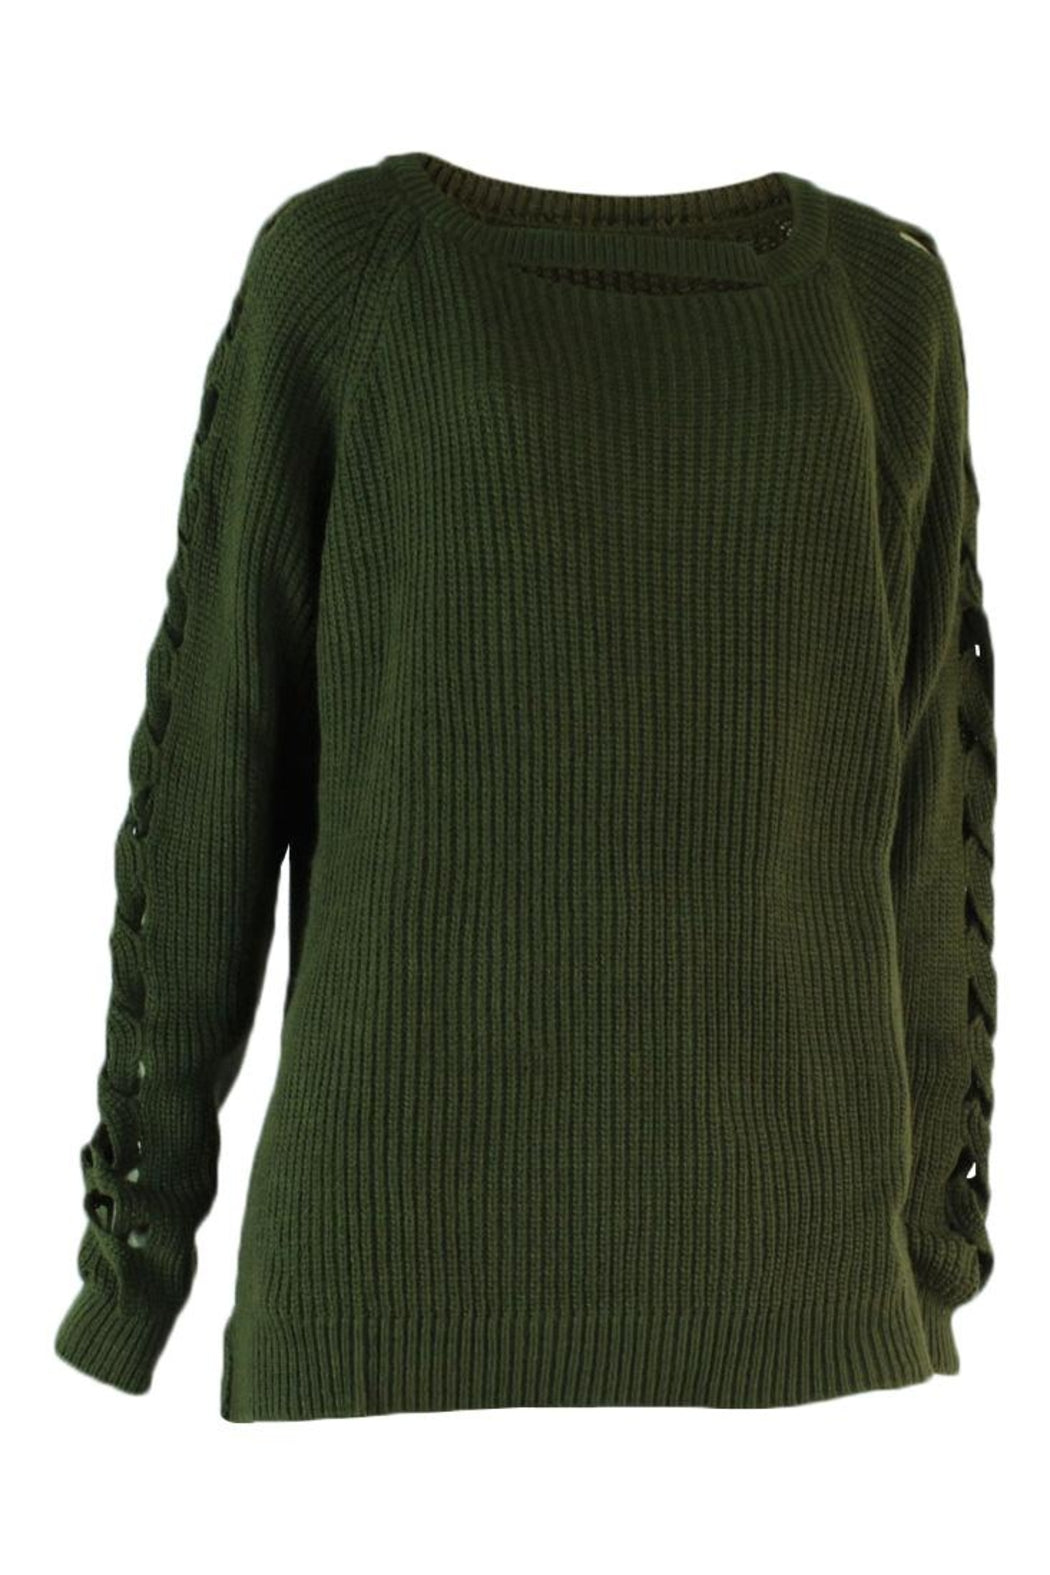 LOOSE FIT SWEATER - Marvy Fashion Boutique